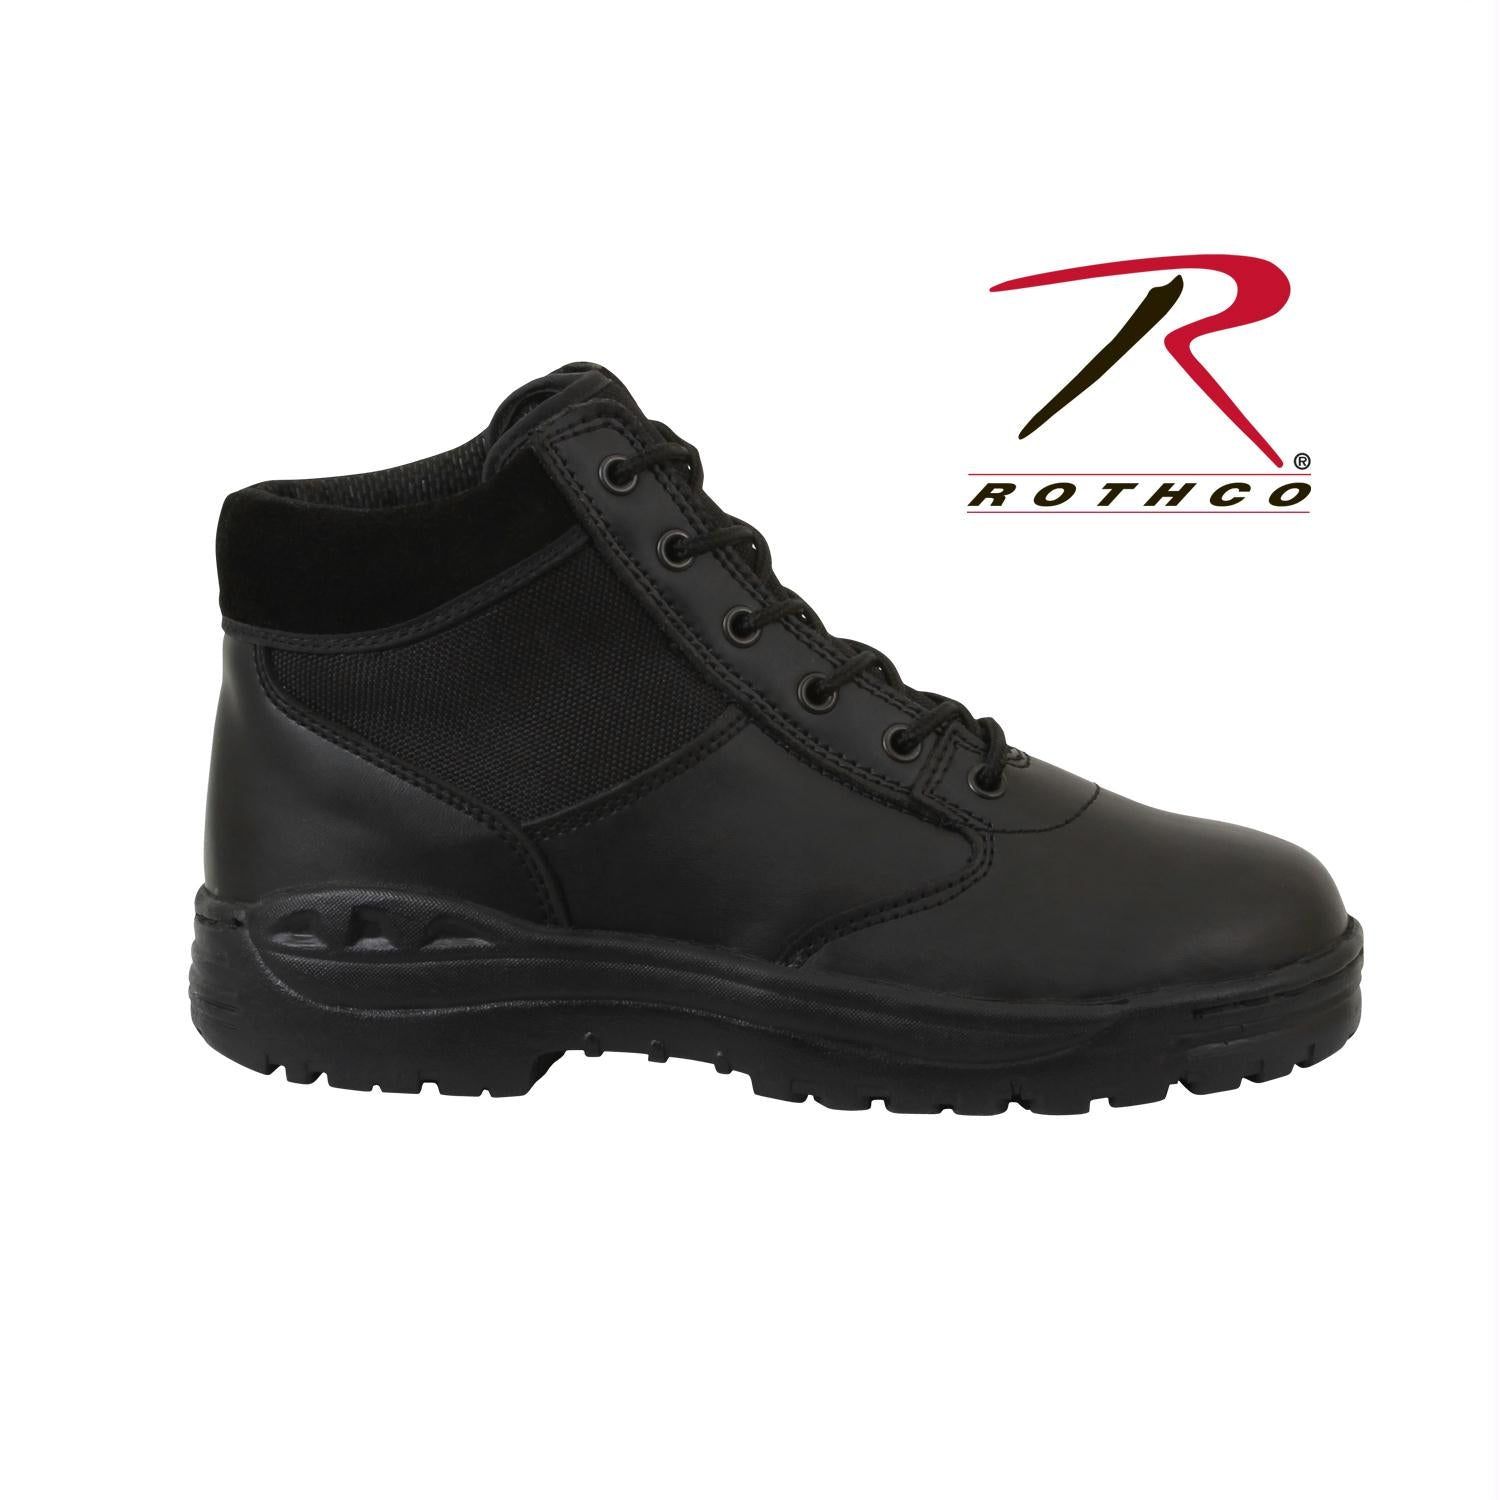 Rothco Forced Entry Security Boot / 6'' - 5.5